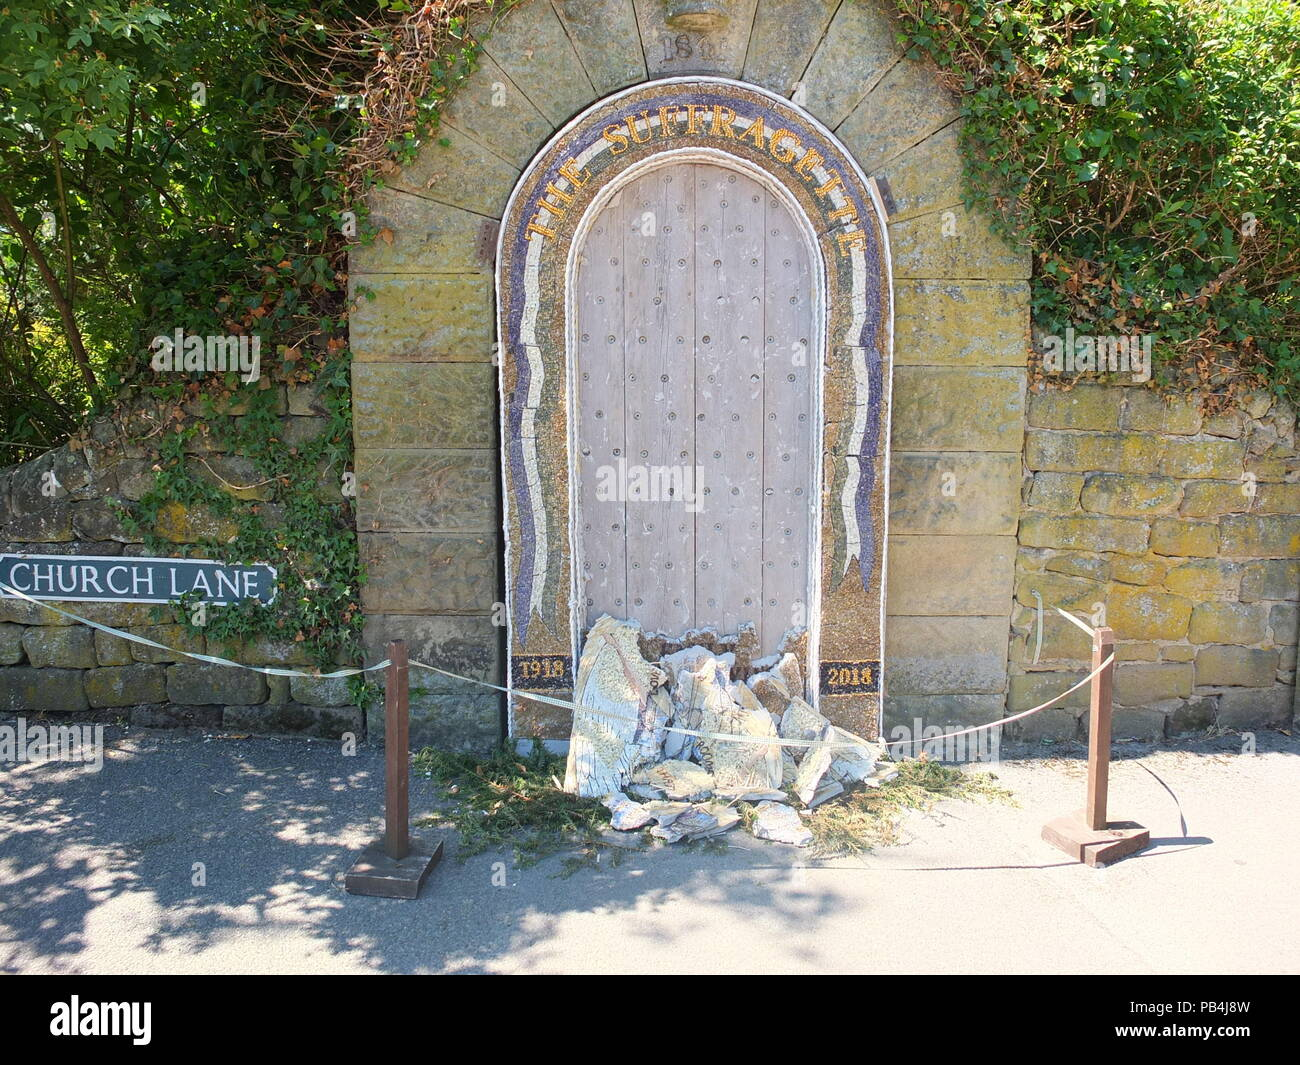 UK heatwave 2018: a well dressing in Rowsley, Derbyshire which has cracked and collapsed owing to excessive sun and heat - Stock Image